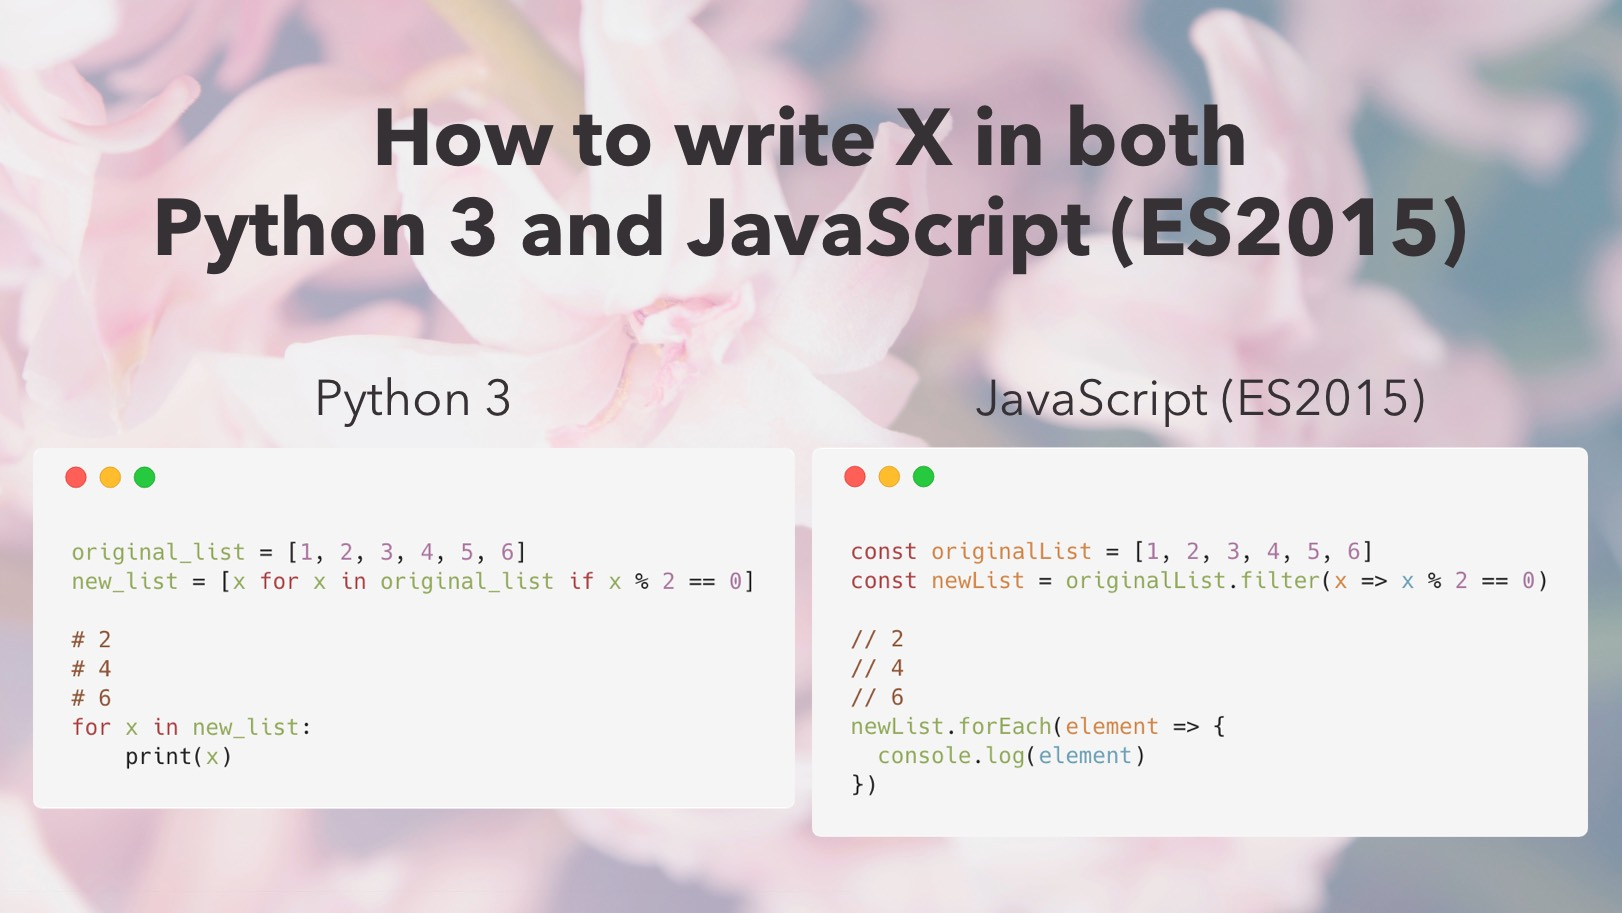 How to write X in both Python 3 and JavaScript (ES2015)